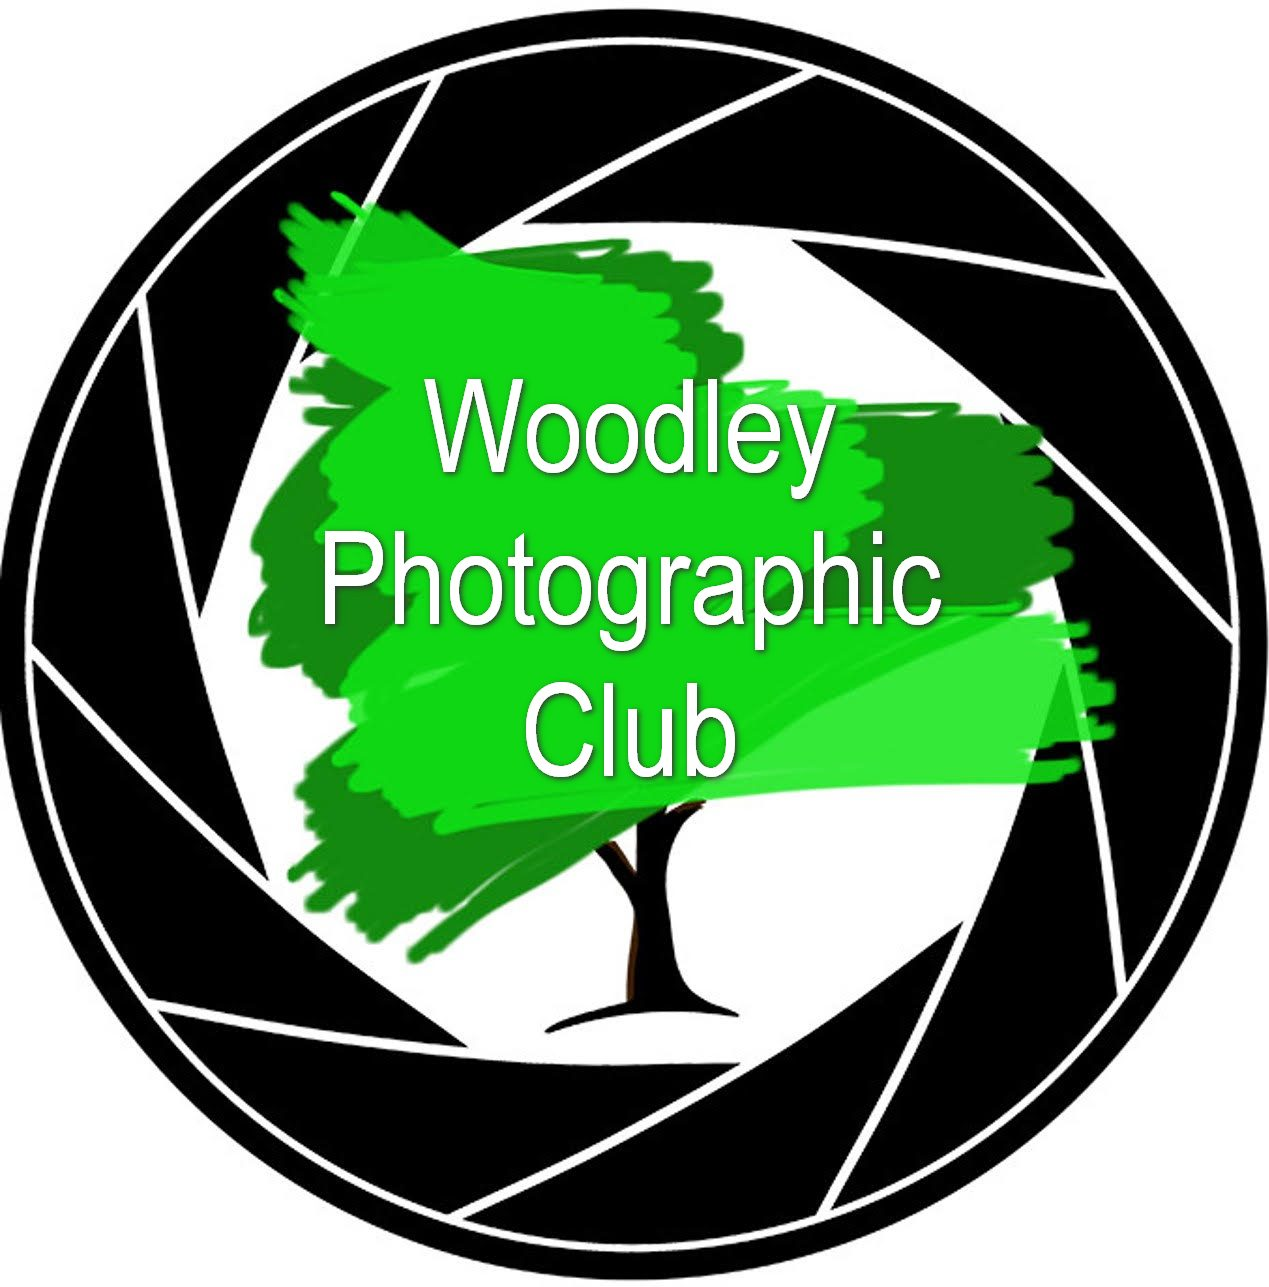 Woodley Photographic Club